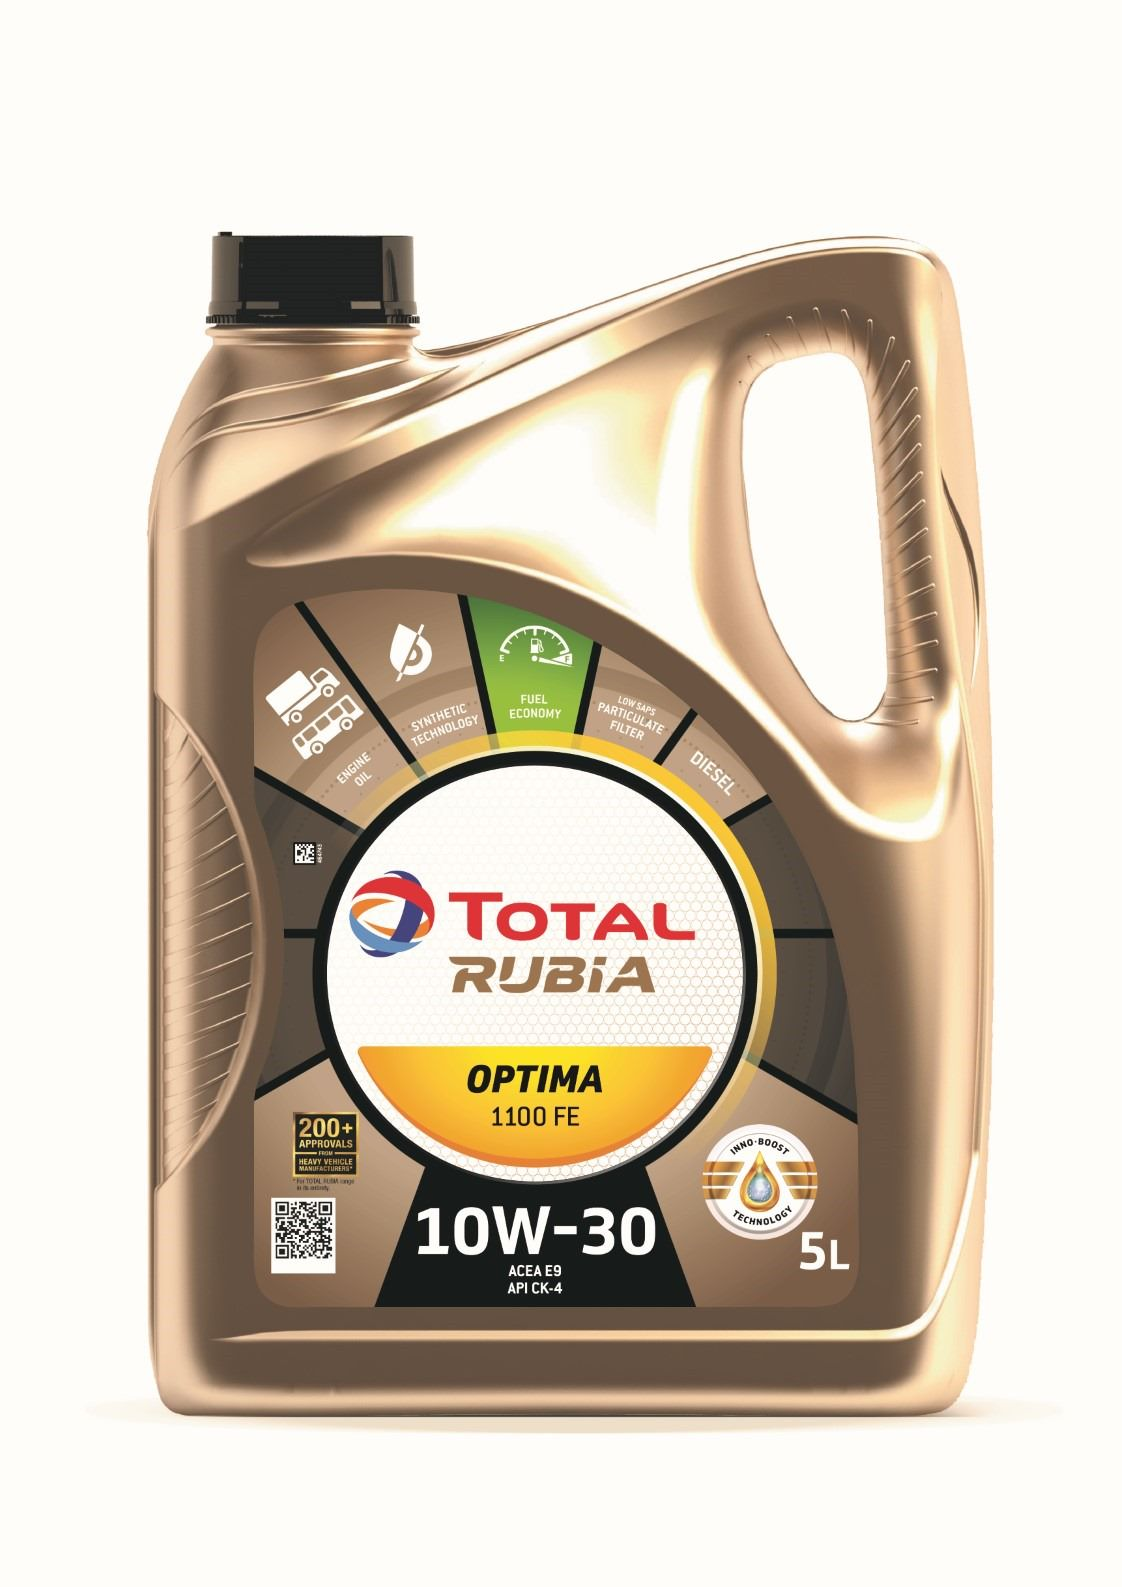 https://commercial.fordfuels.co.uk/wp-content/uploads/sites/10/Total-Rubia-Optima-1100-FE-10W-30-318x450.jpg+https://commercial.fordfuels.co.uk/wp-content/uploads/sites/10/Total-Rubia-Optima-1100-FE-10W-30-636x900.jpg